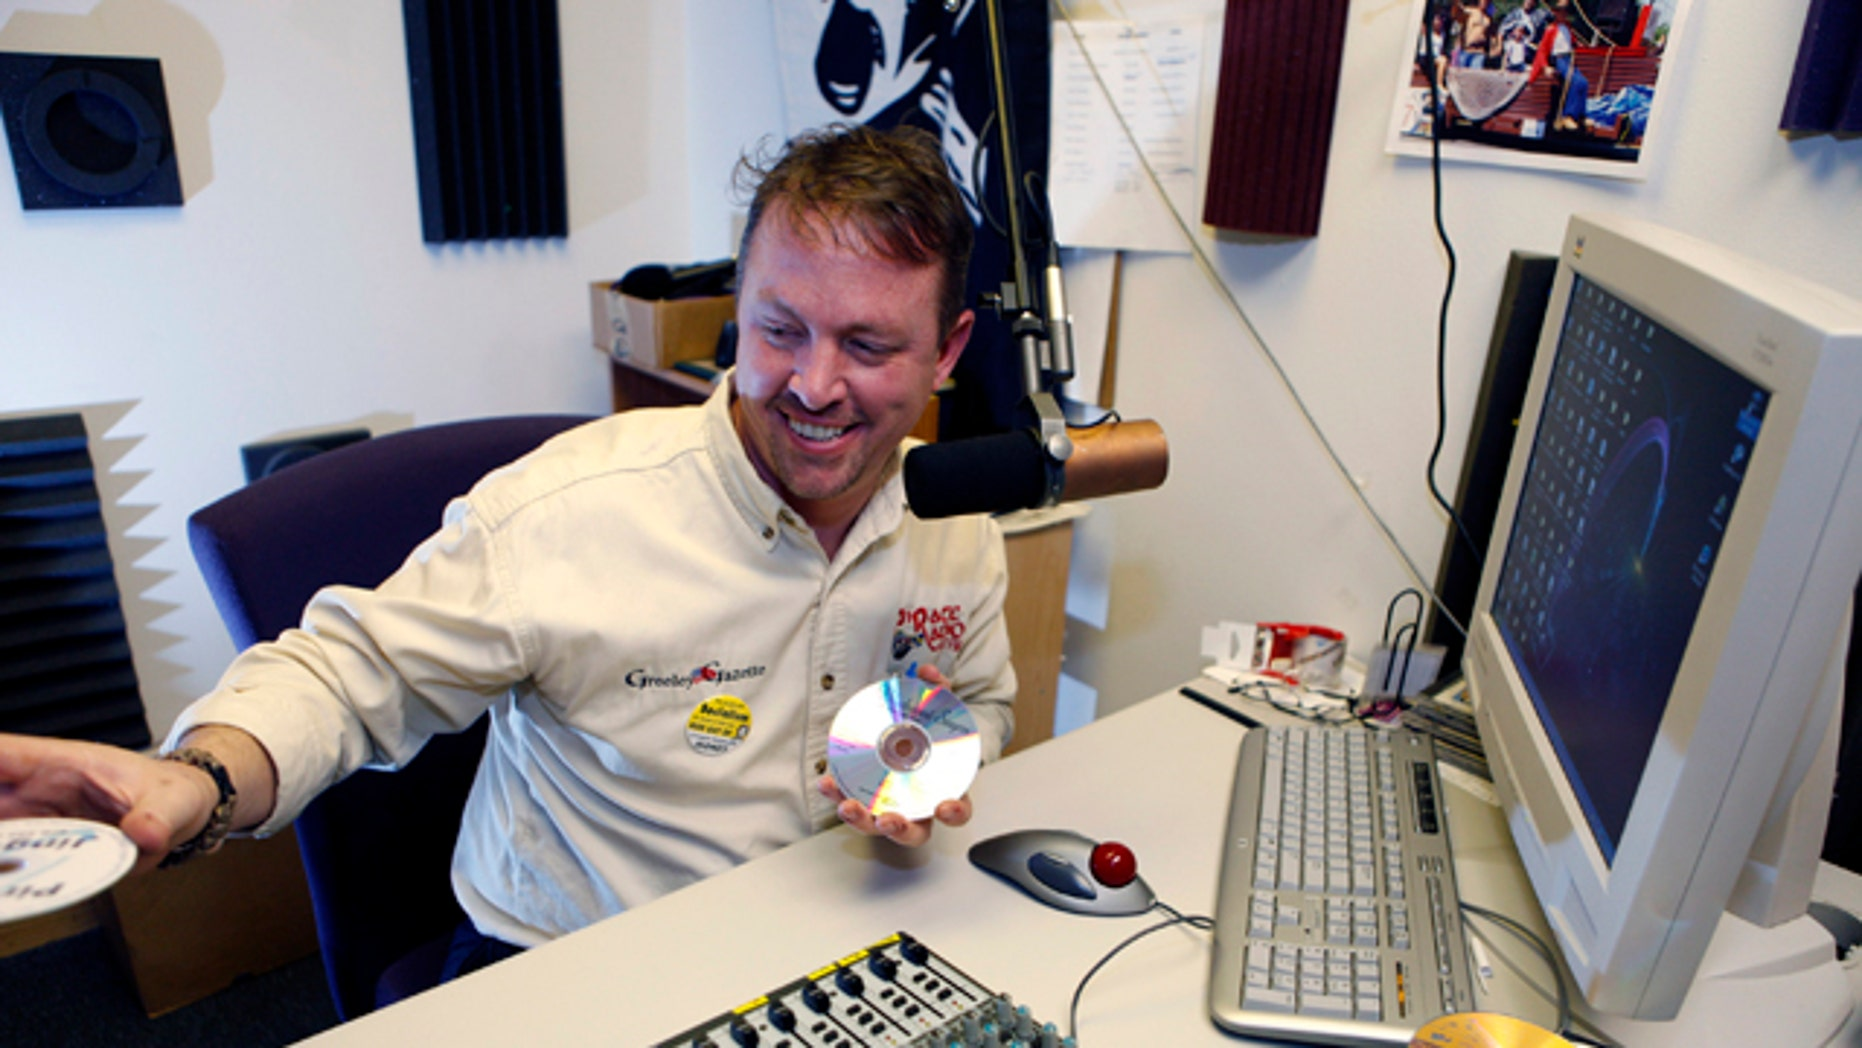 Jan. 14, 2011: Brett Reese is pictured at the controls in the studio of his radio station in Greeley, Colo.